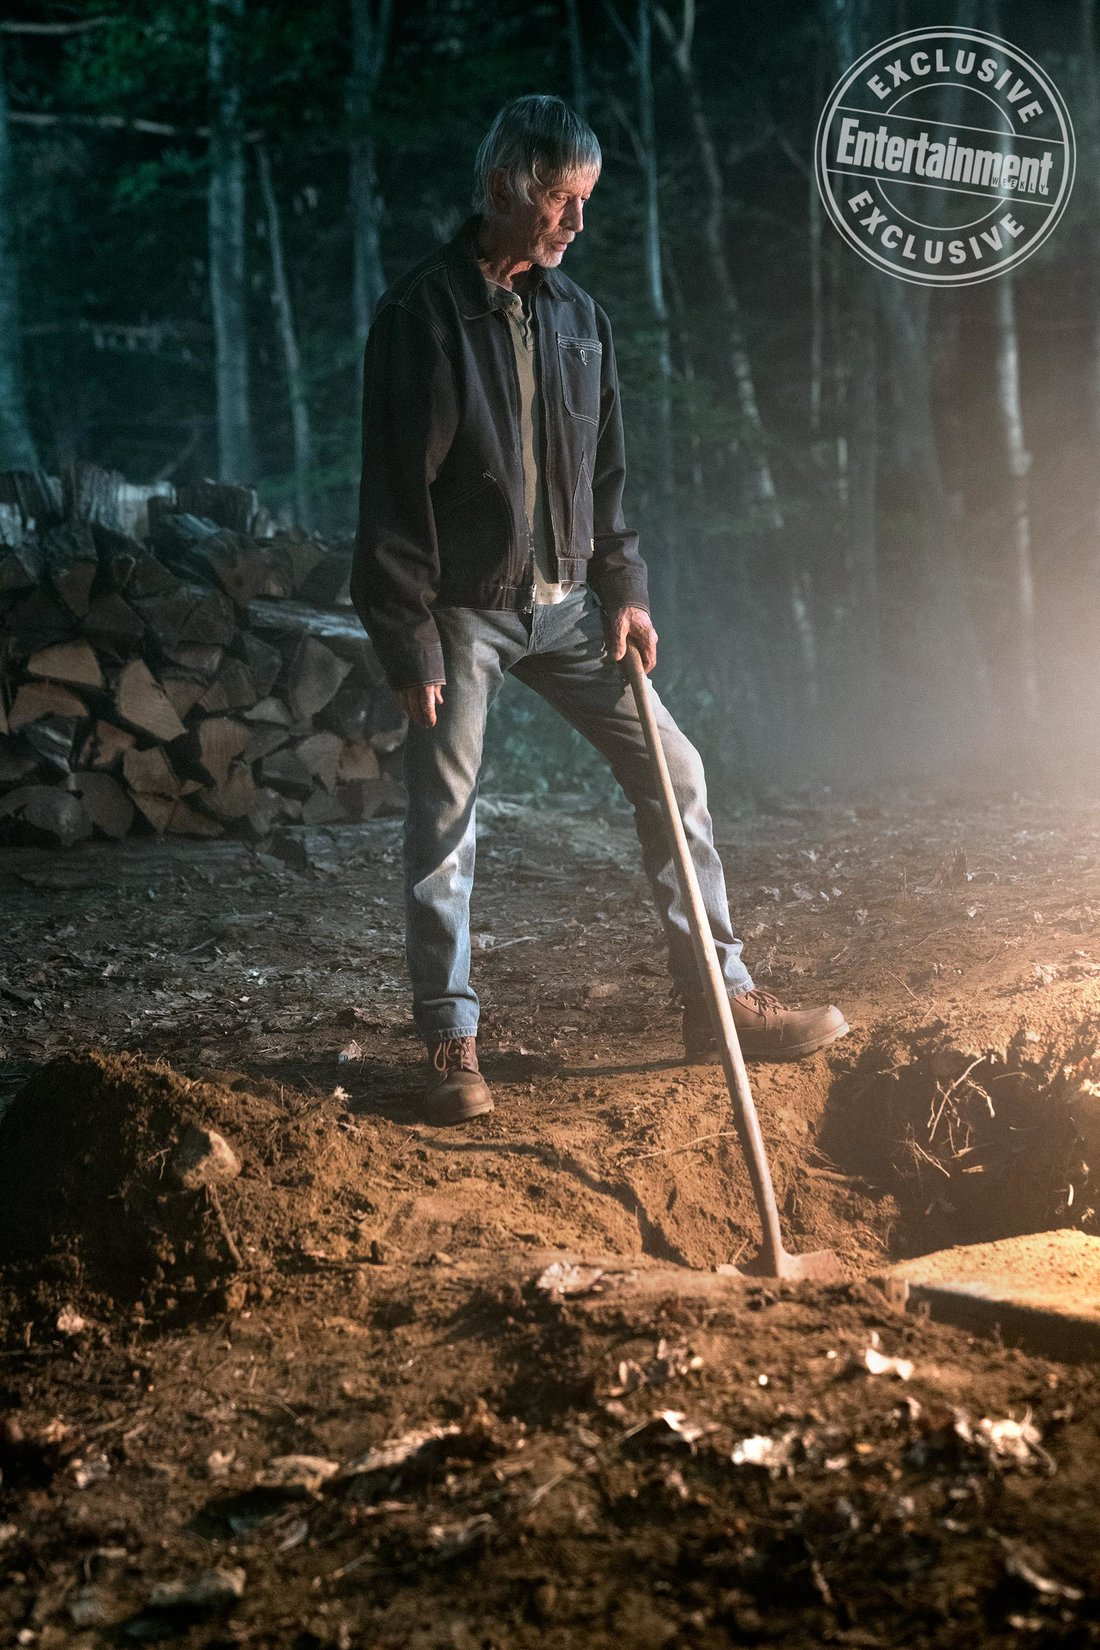 kastil, castle Rock Season 1 First Look